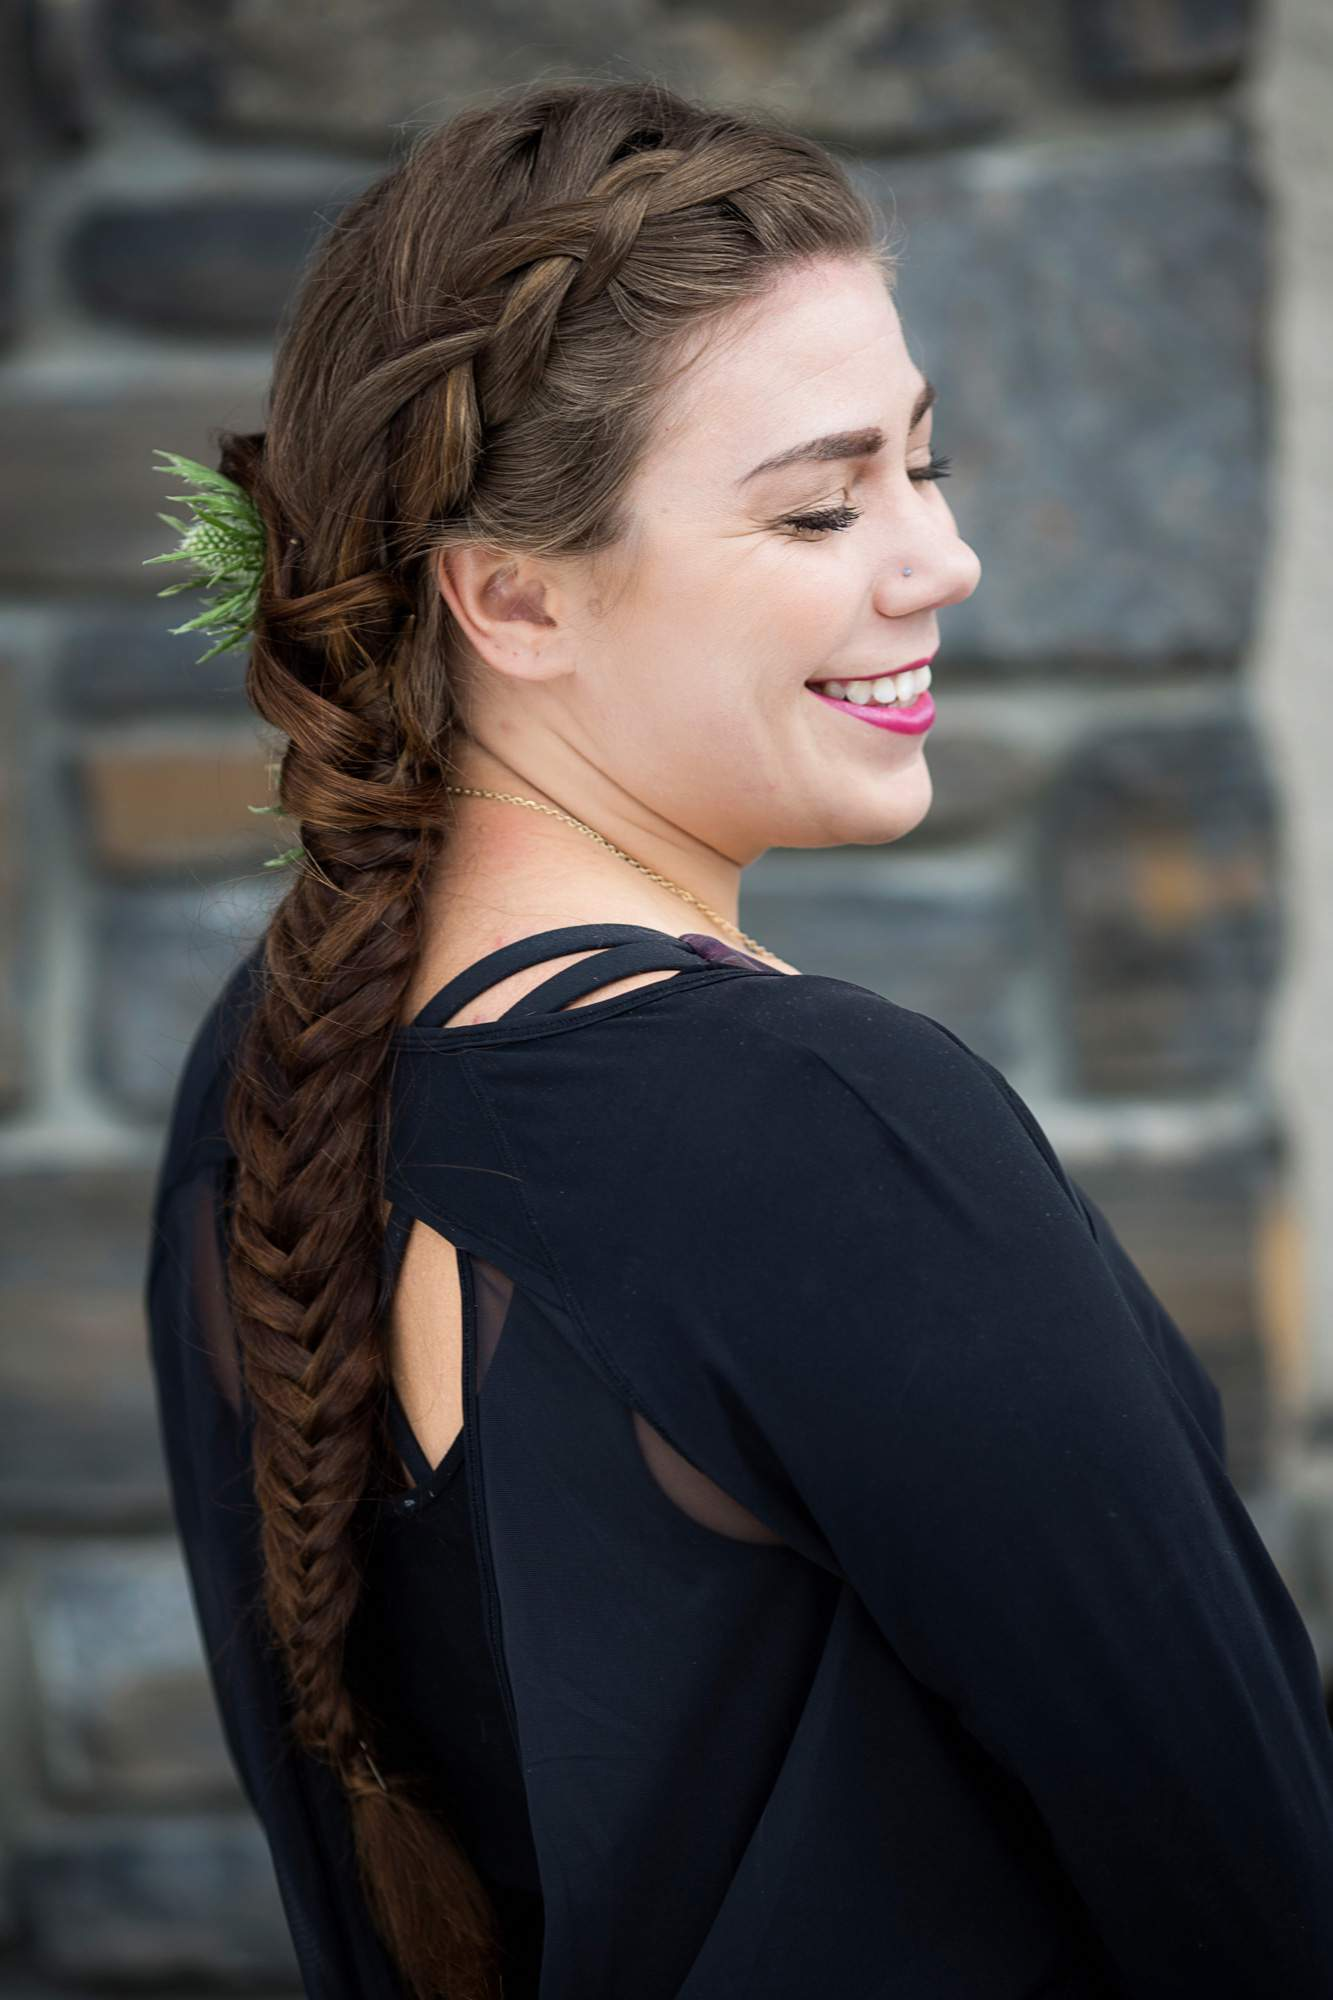 Unique Hair Styling and Bridal Hair - Rapunzels Salon and Spa - Canmore